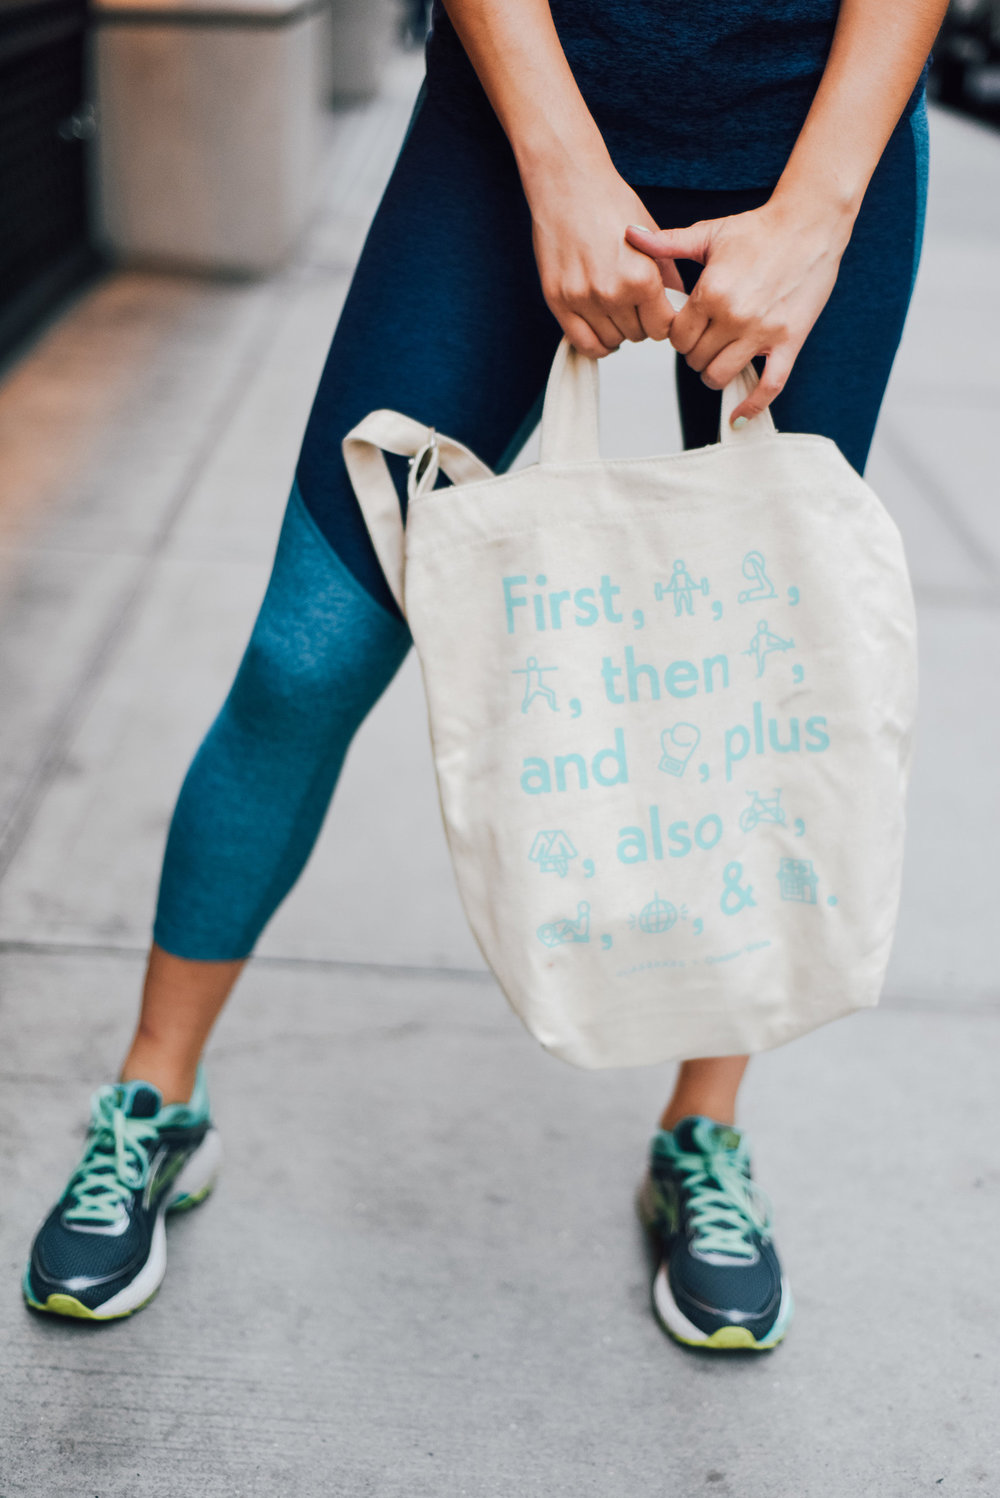 baggu-classpass-gym-tote-bag-collaboration.jpg